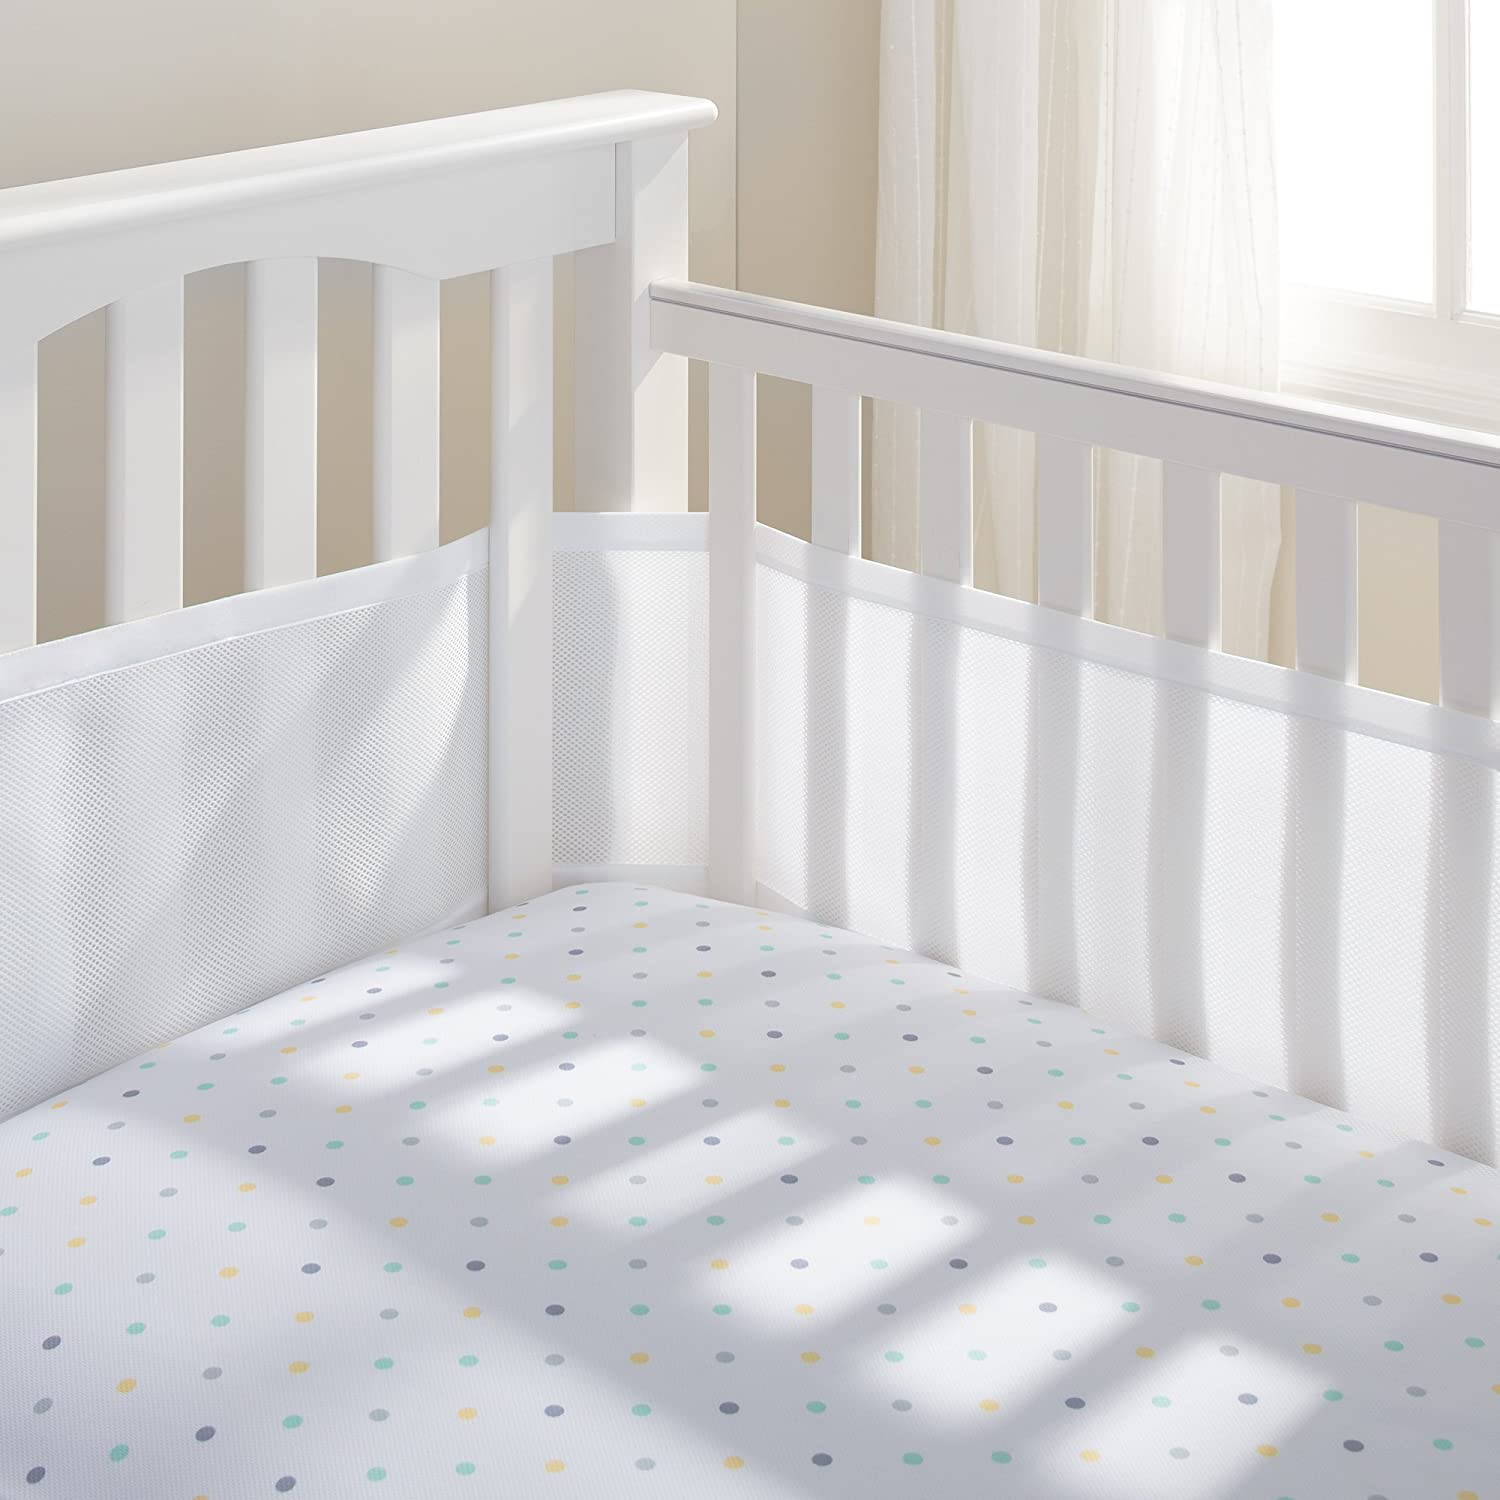 Crib bedding sale uk - Crib Bedding Sale Uk 23